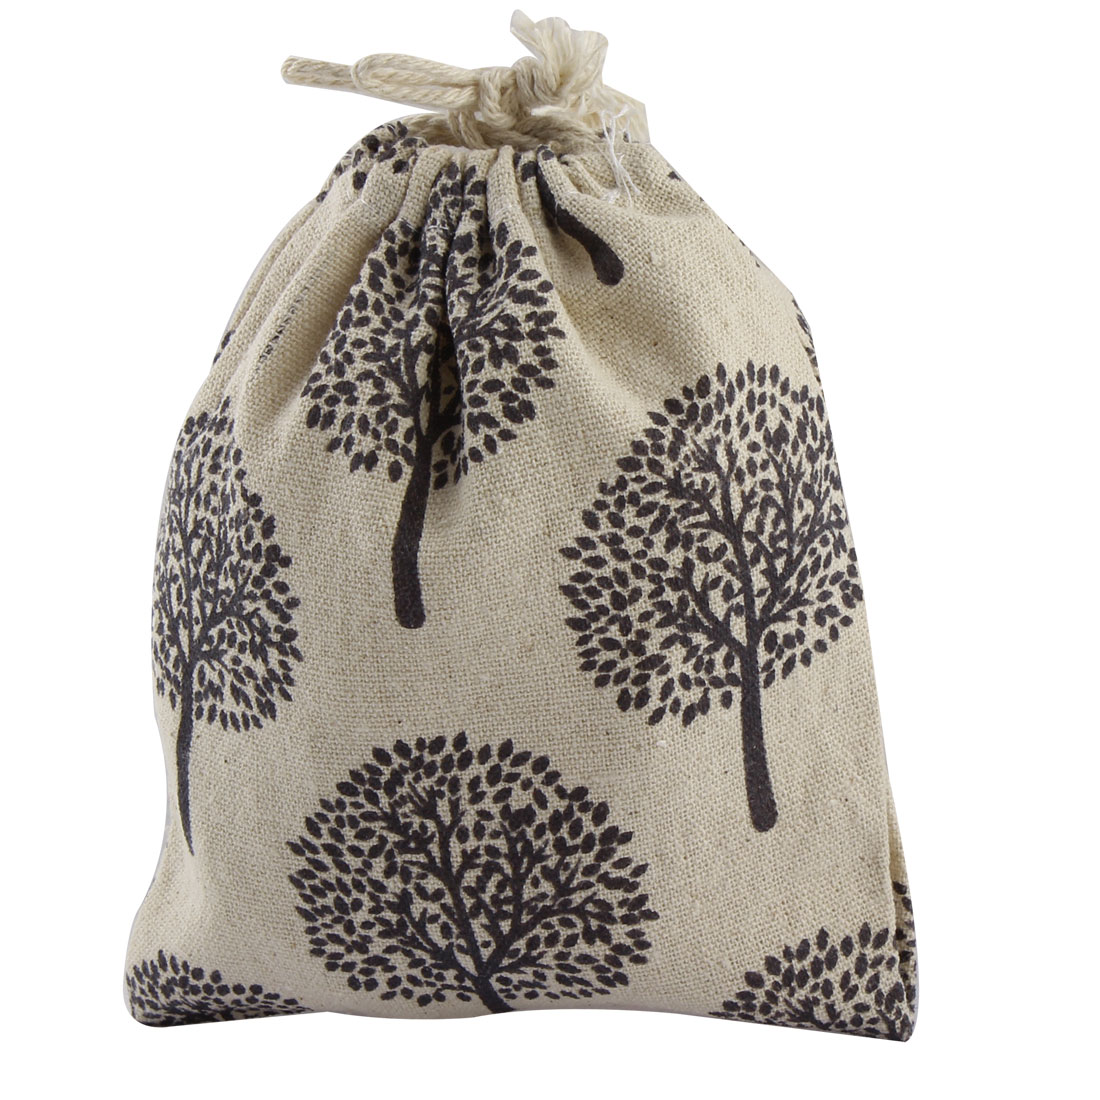 Home Cotton Blend Retro Style Tree Pattern Clothes Socks Drawstring Pouch